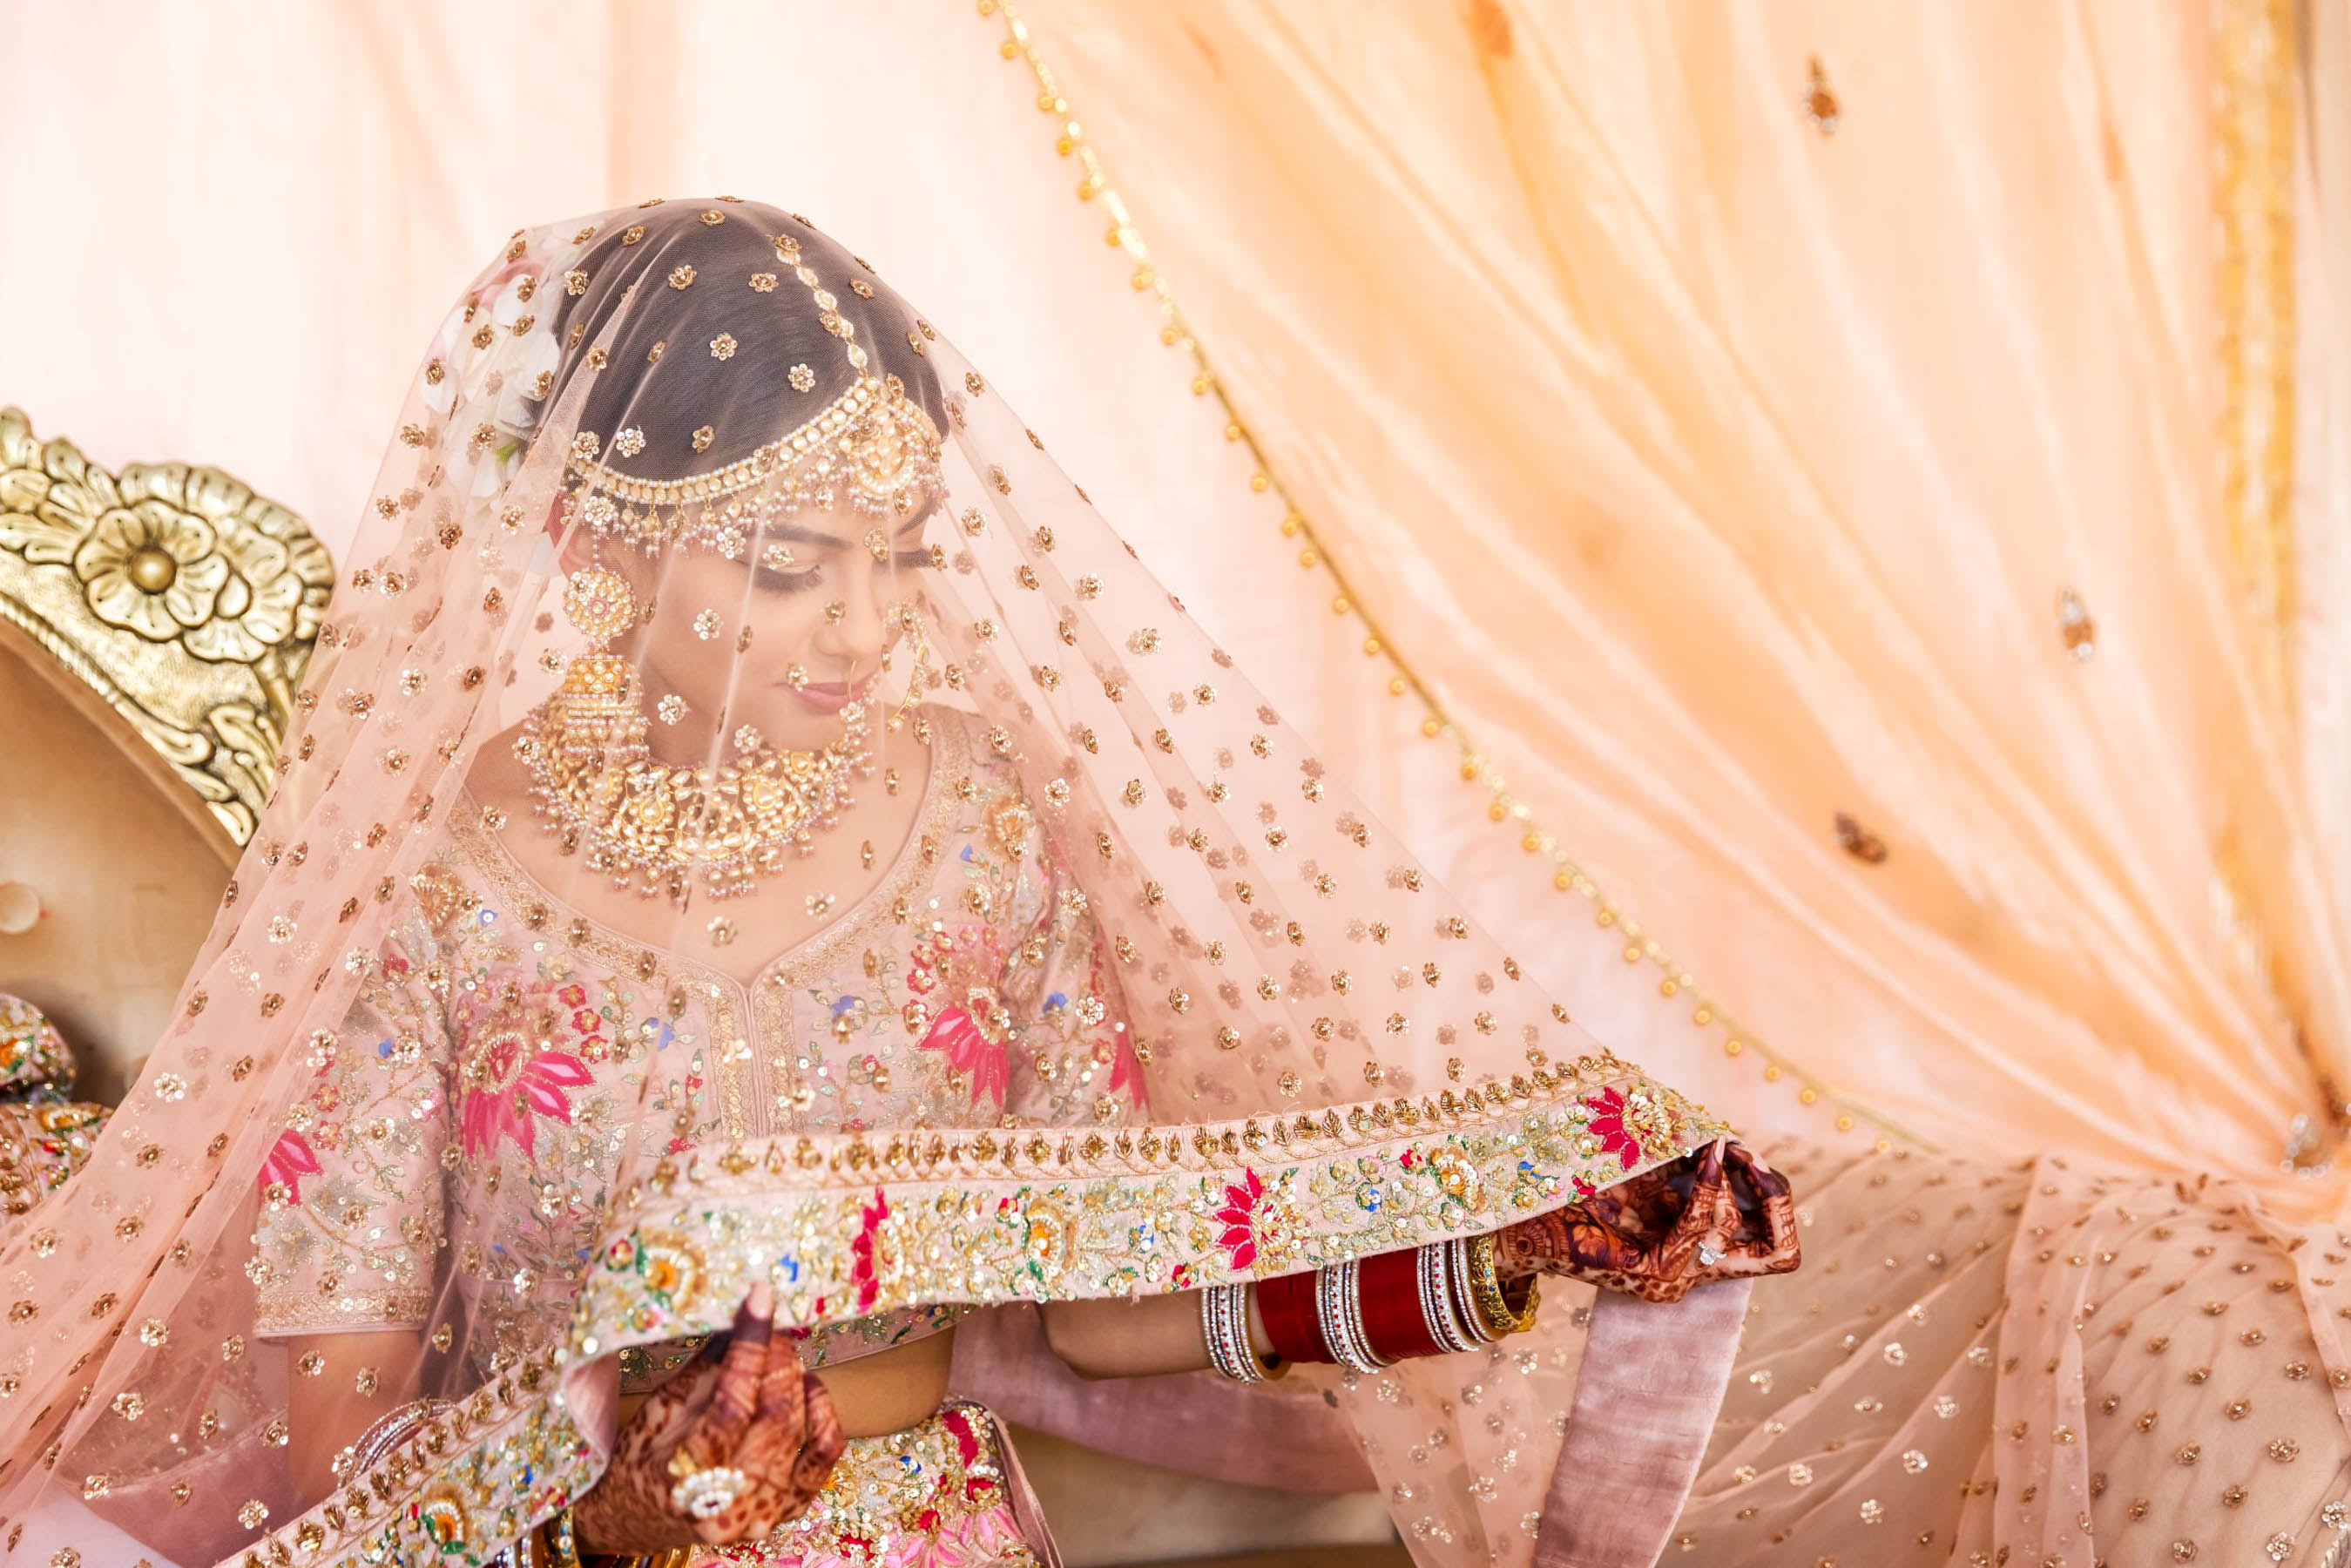 As a makeup artist, Myura had the creative freedom to stay true to her style during her glam Punjabi wedding.